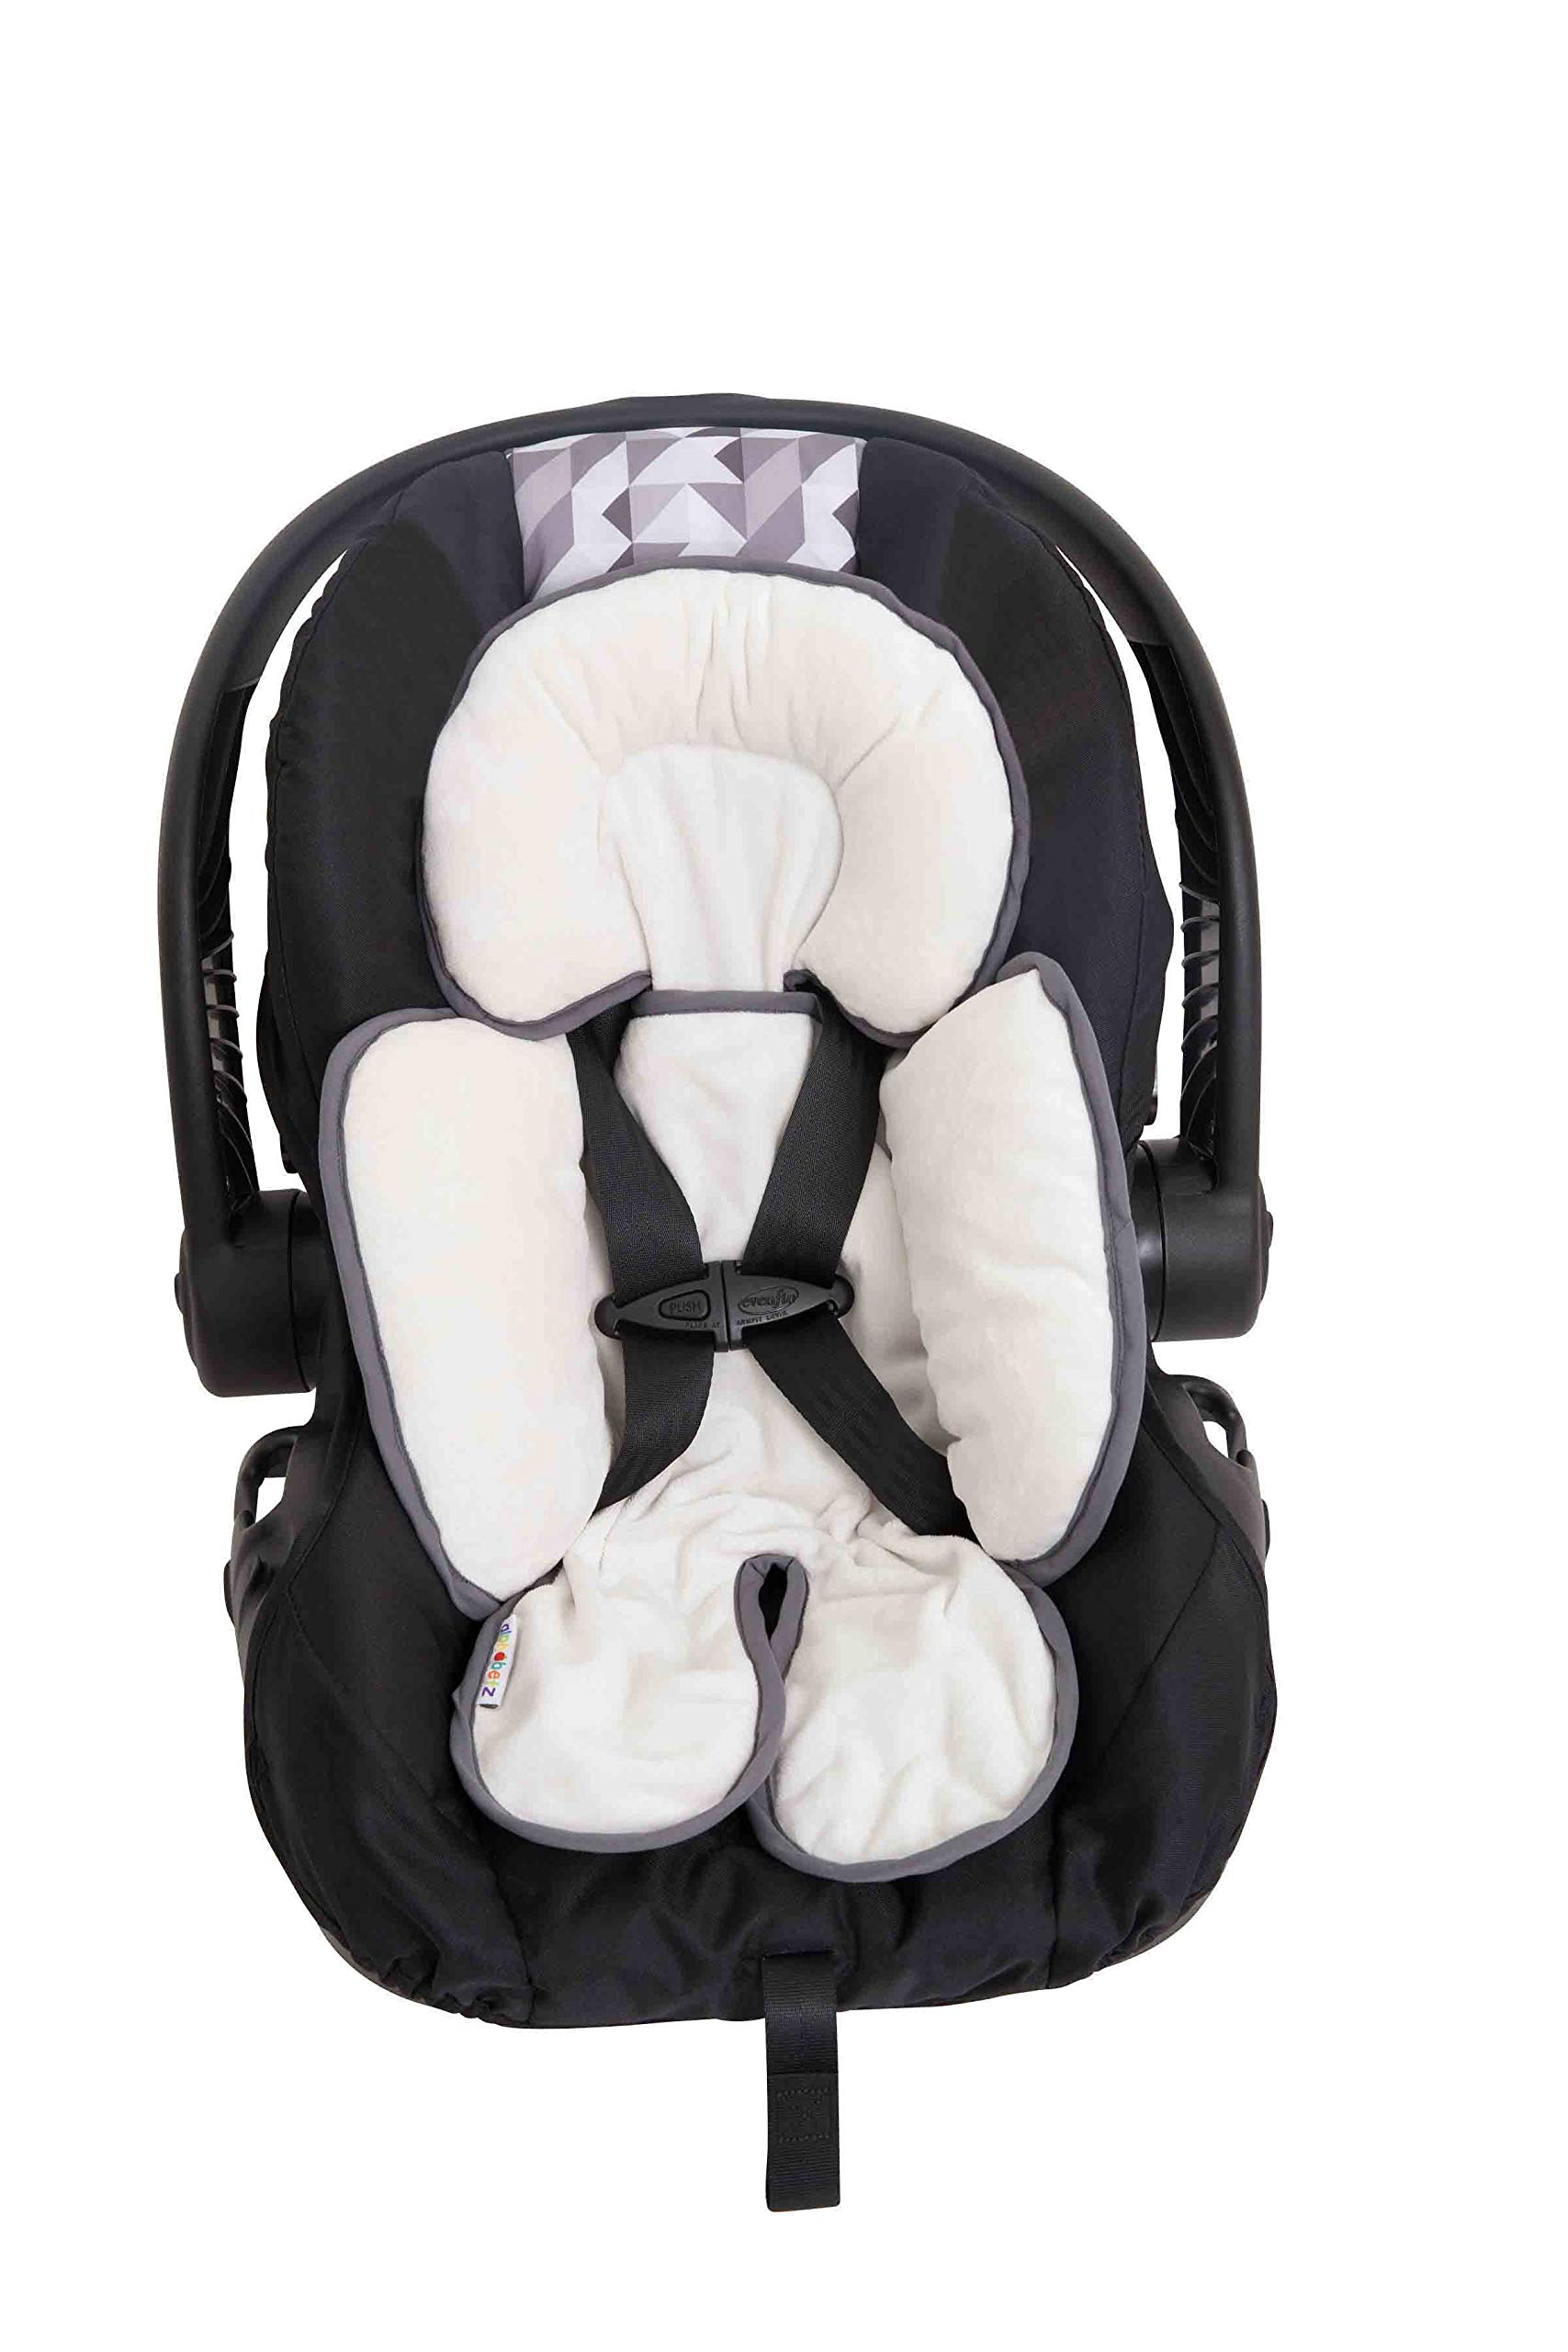 Alphabetz Reversable Head And Body Support Strap Cover Set For Car Seats Strollers White Gray